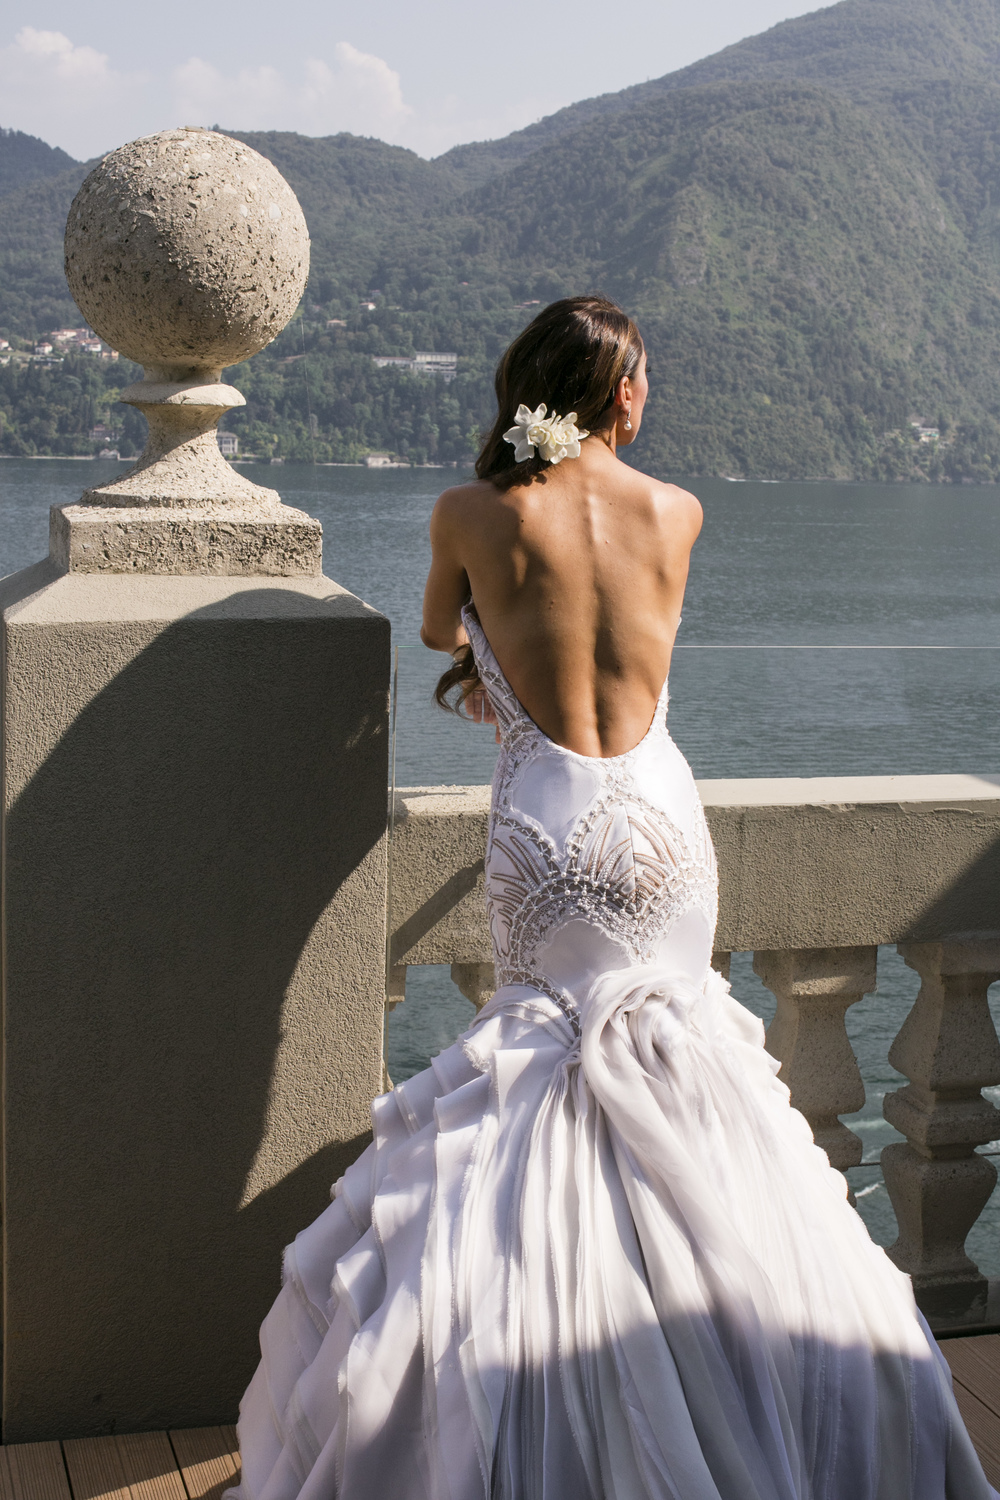 Ceci_New_York_Wedding_Lake_Como_Italy_Luxury_Style_Real_Bride_28.jpg